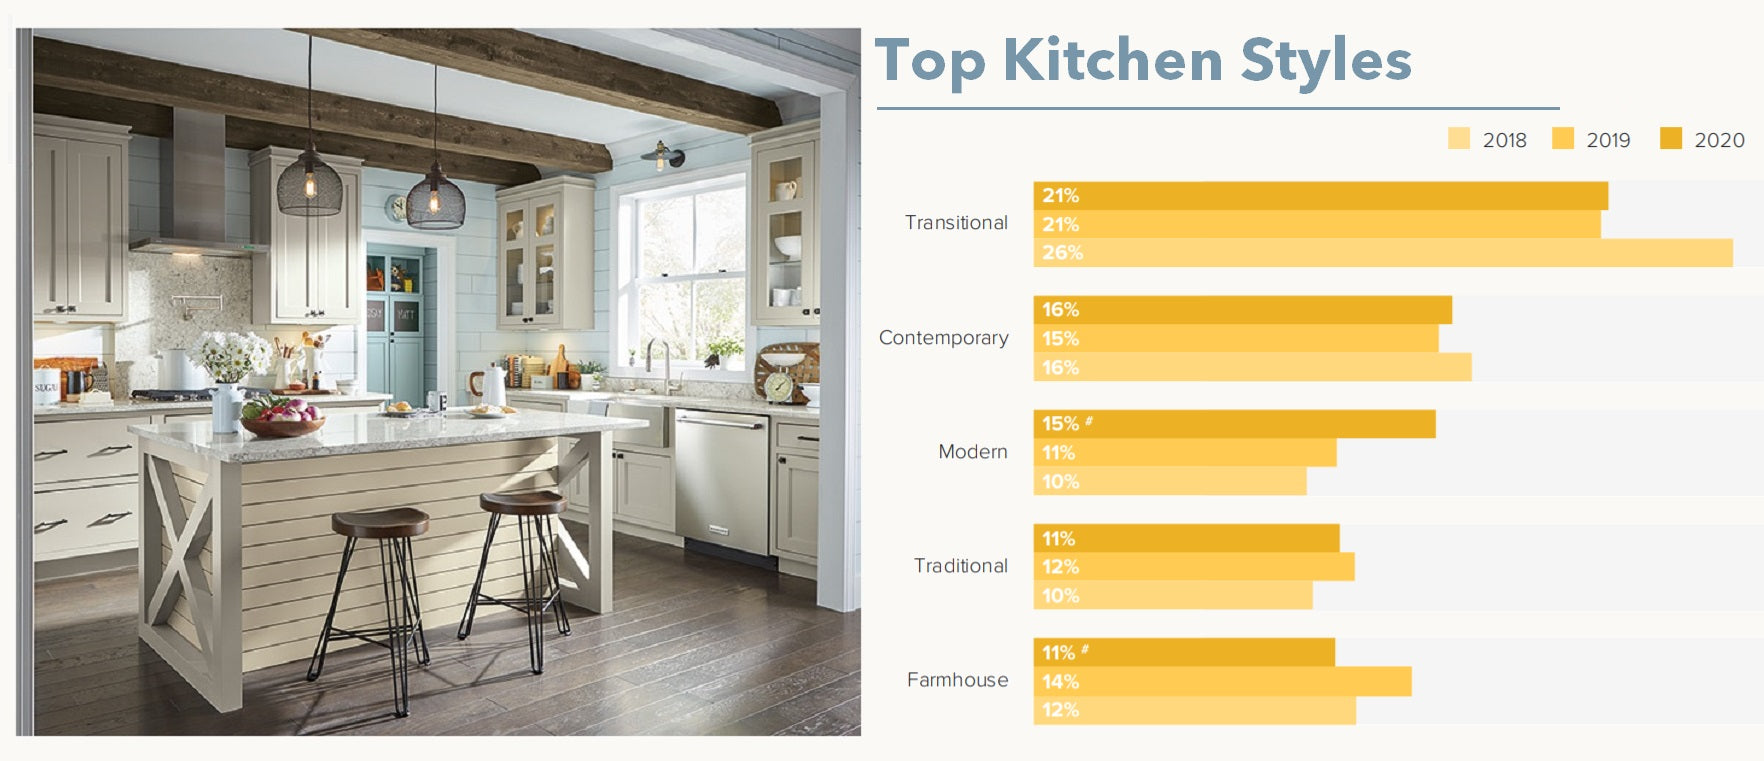 top kitchen style trends for 2020. Farmhouse style is on its way out.